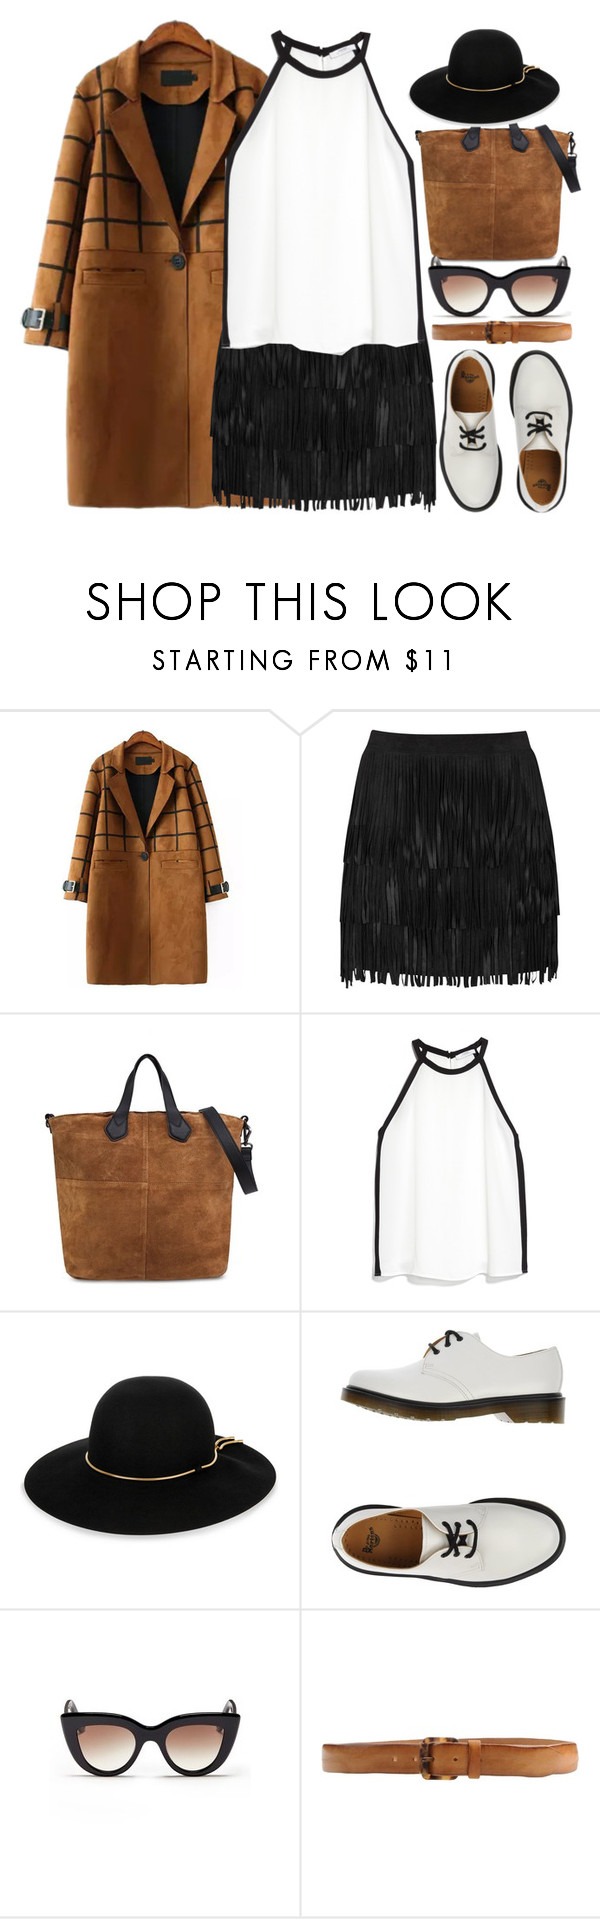 """Hey Paper Works"" by jiabao-krohn ❤ liked on Polyvore featuring Alice + Olivia, MANGO, Lanvin, Dr. Martens, E L L E R Y and Orciani"